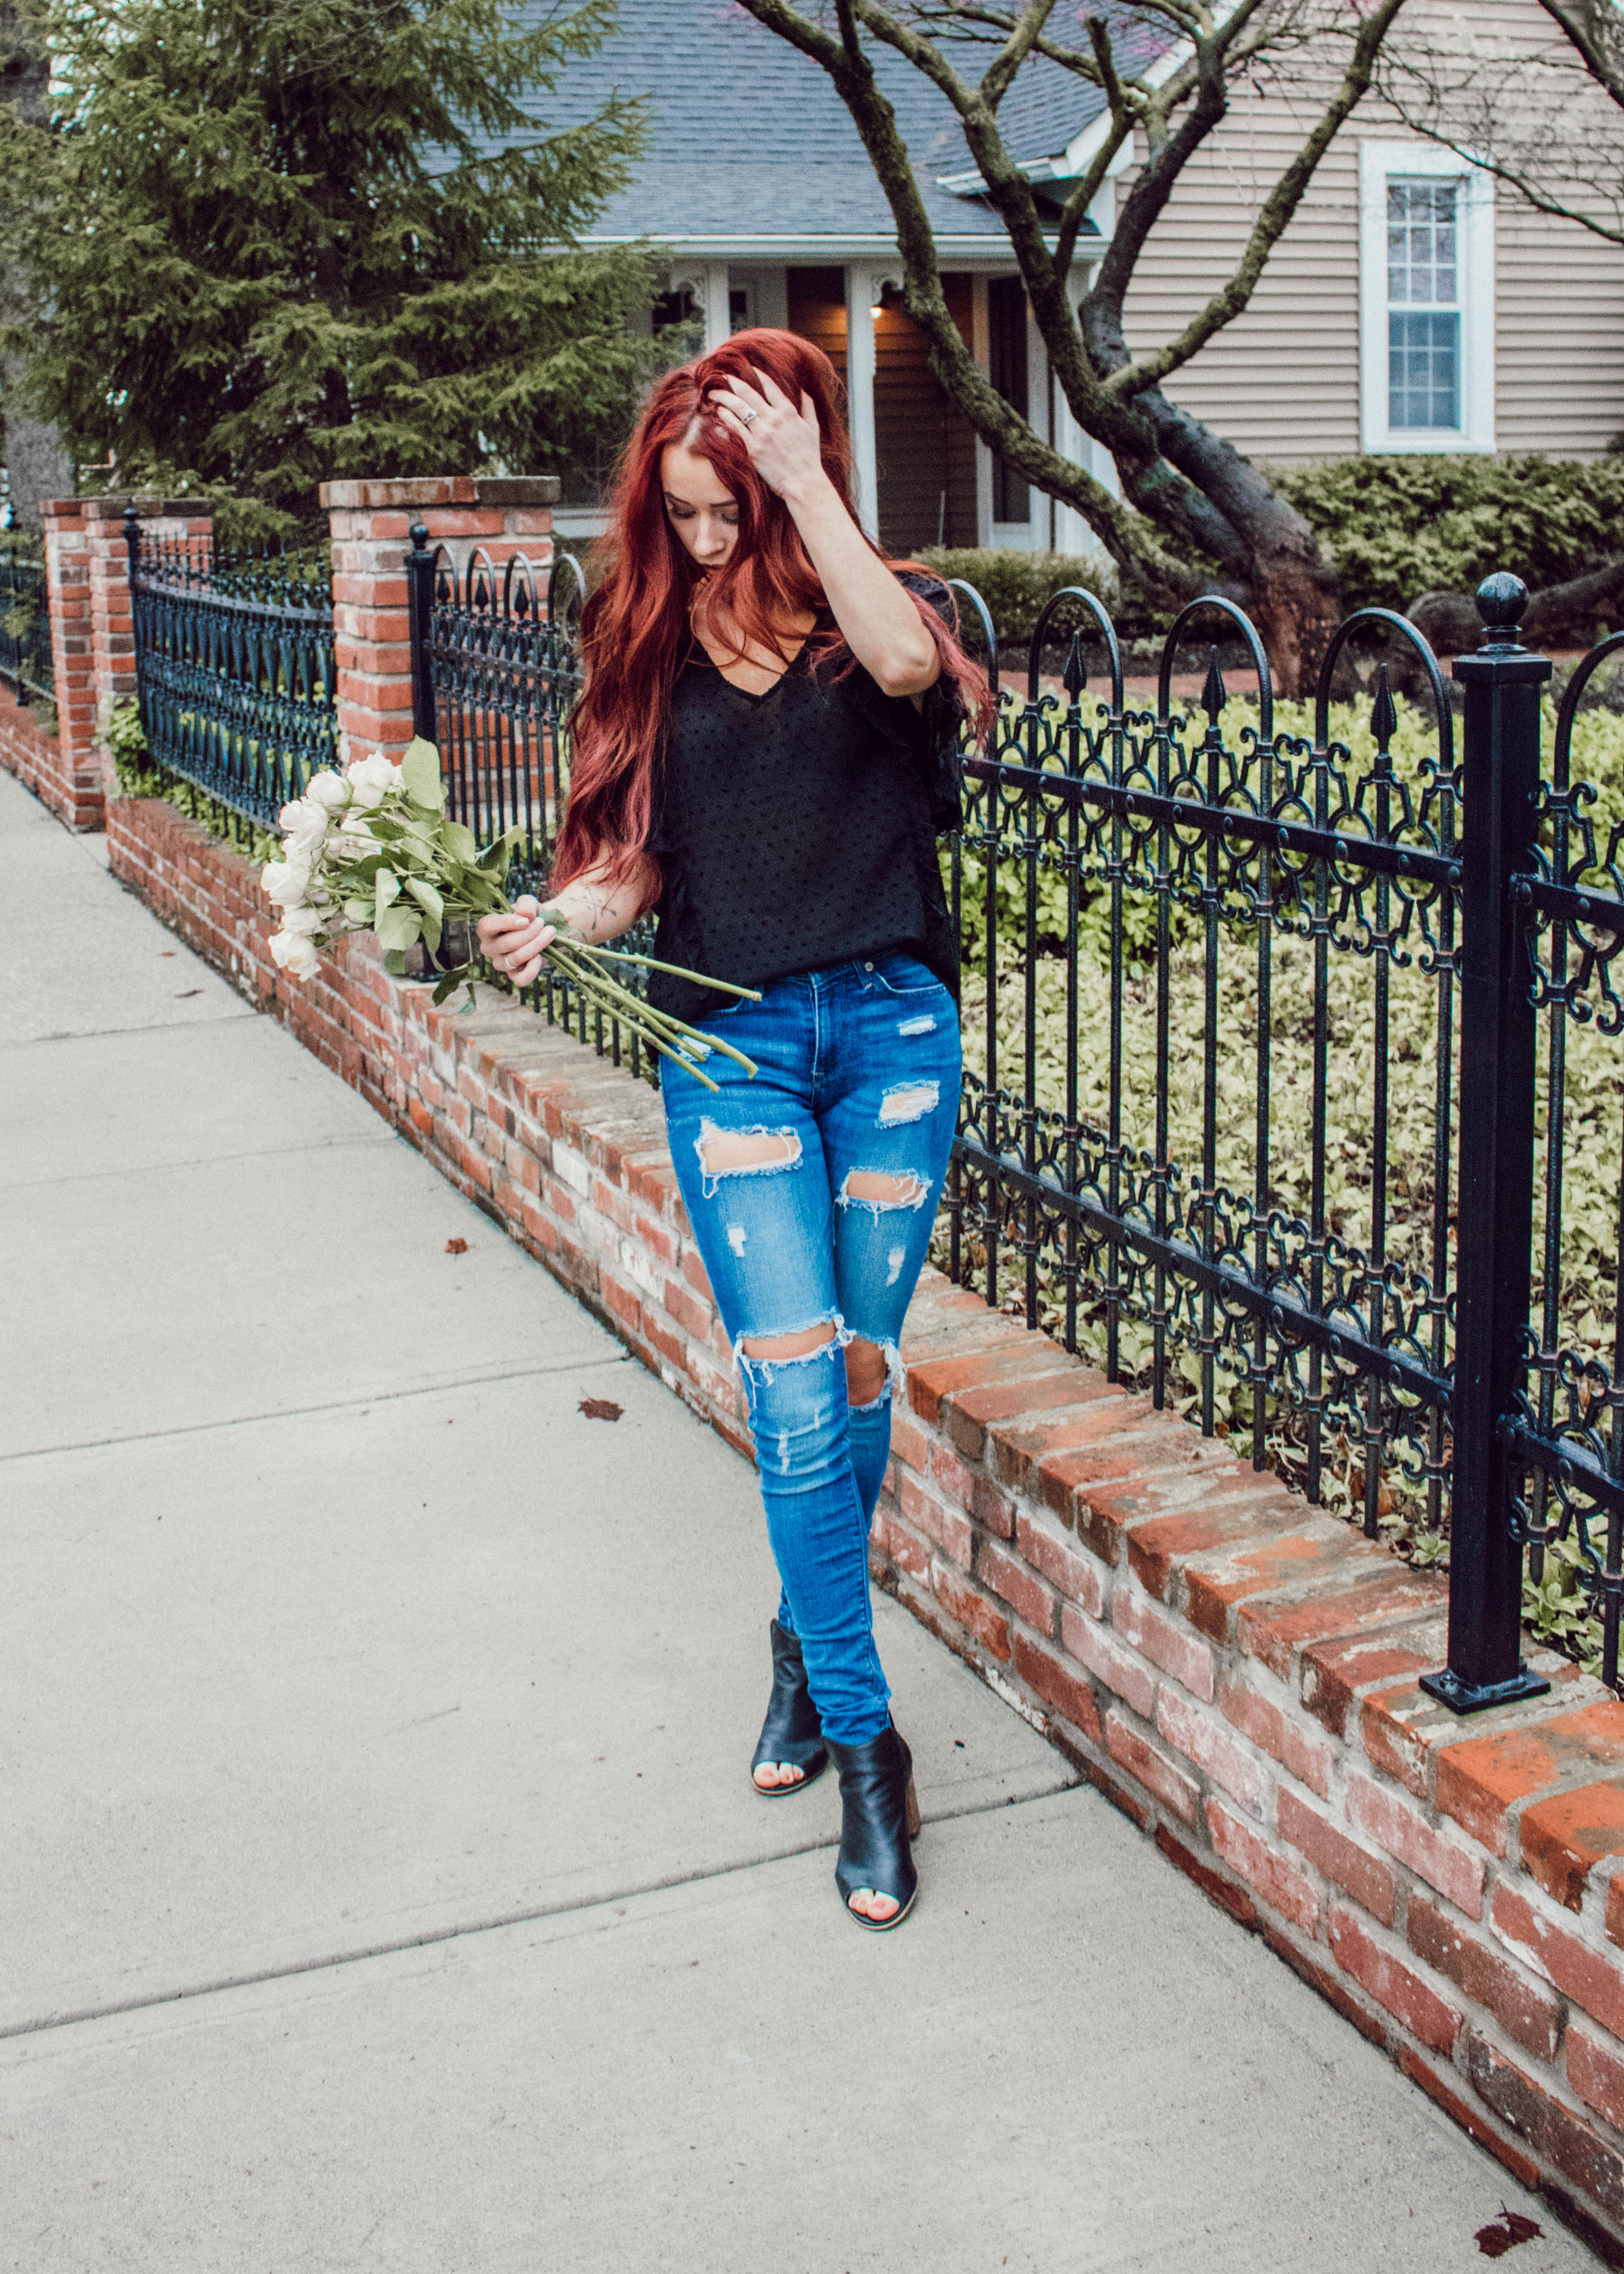 Upbra Review by popular Indianapolis fashion blogger, Trendy in Indy